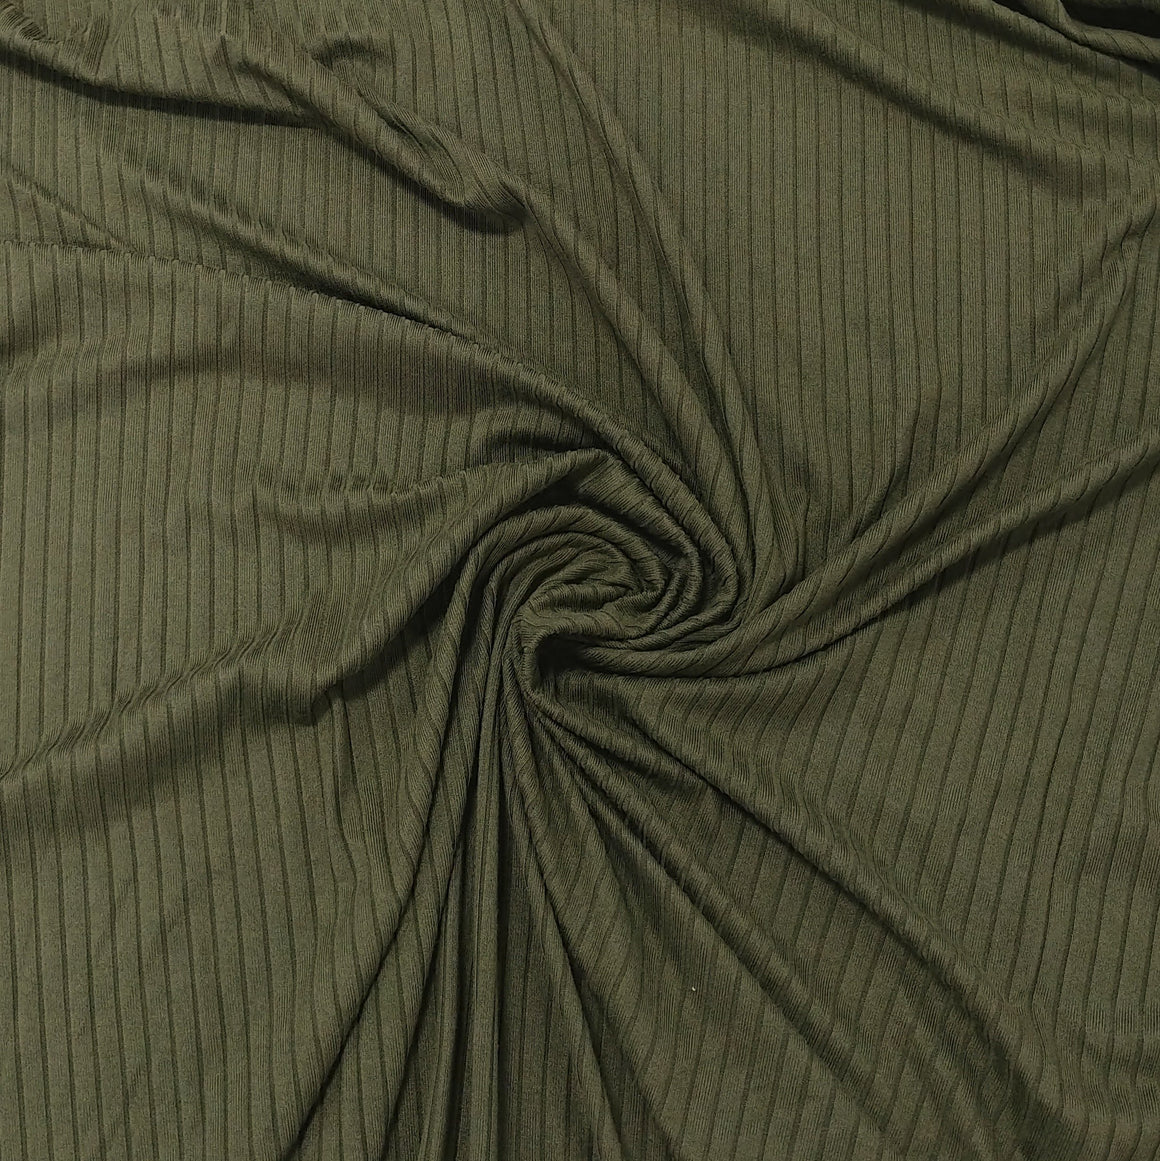 Solid Olive Green Poly Spandex 4 Way Stretch 8x3 Rib Knit - Raspberry Creek Fabrics